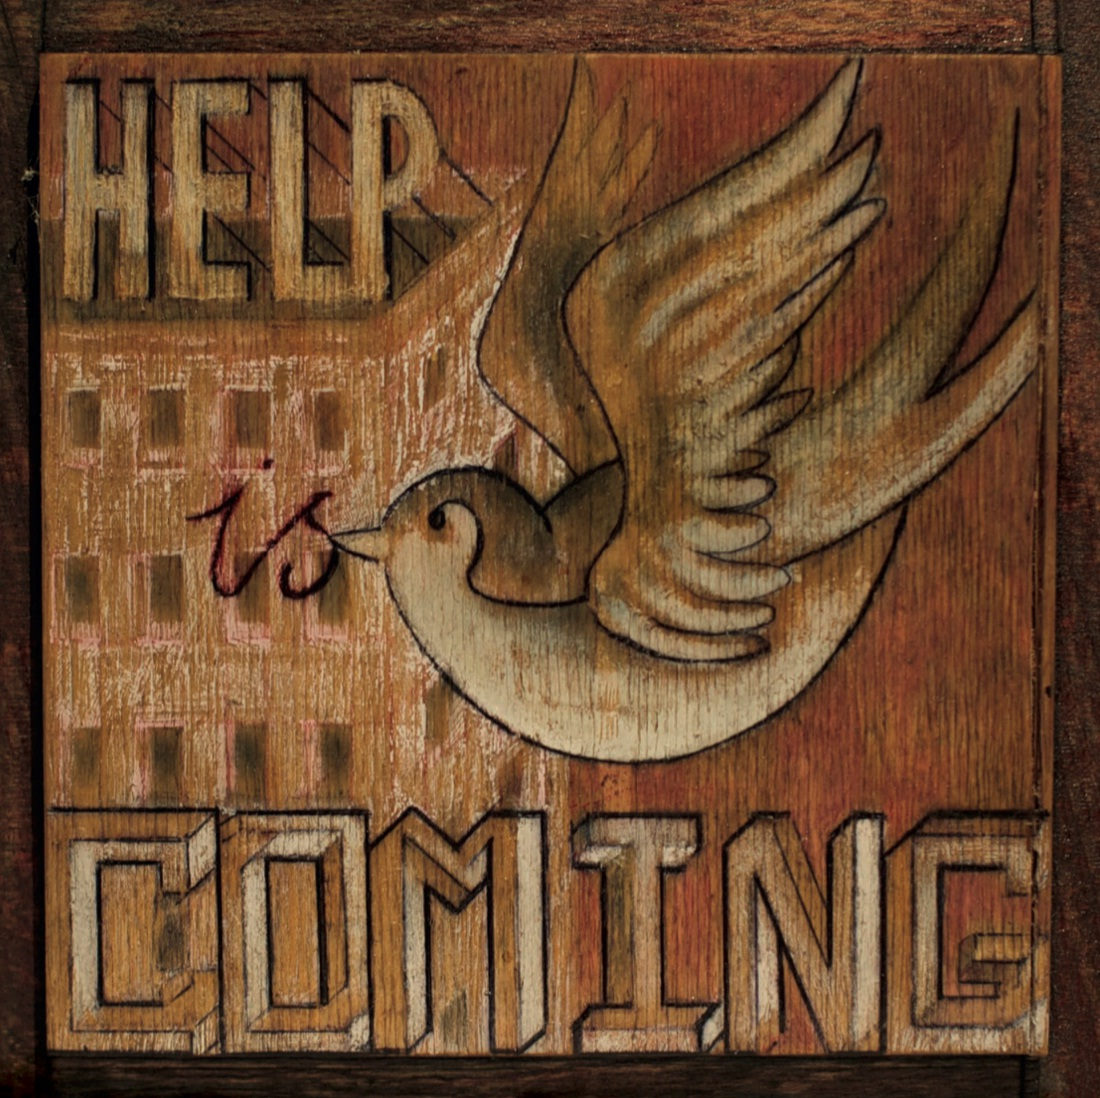 """Crowded House - """"Help Is Coming"""" Charity Single: Vinyl - Save The Children"""